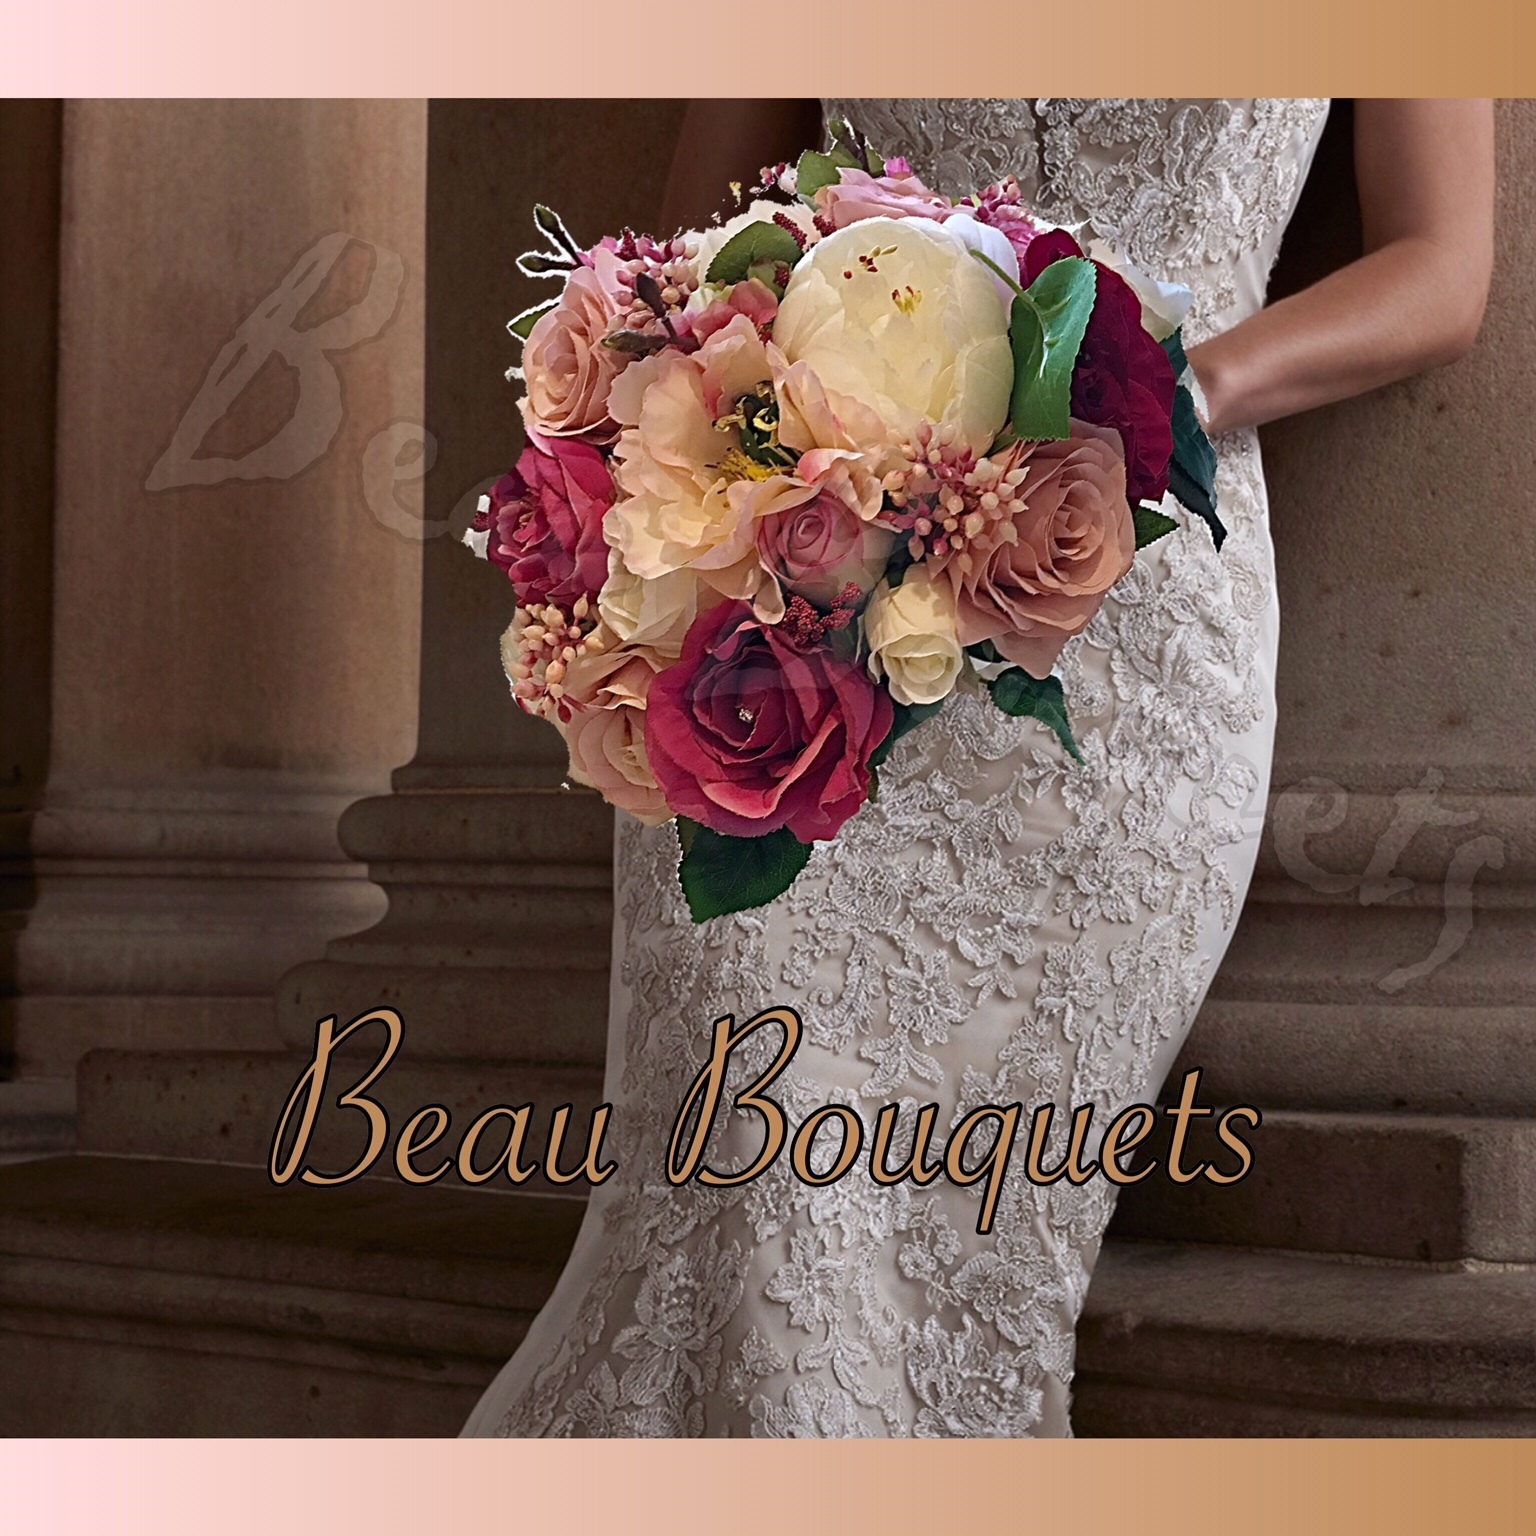 DESIRE - ROUND BRIDE BOUQUET Rose, Peony, japanese berry with dark foliage in Cerise pink, dusky pink & ivory